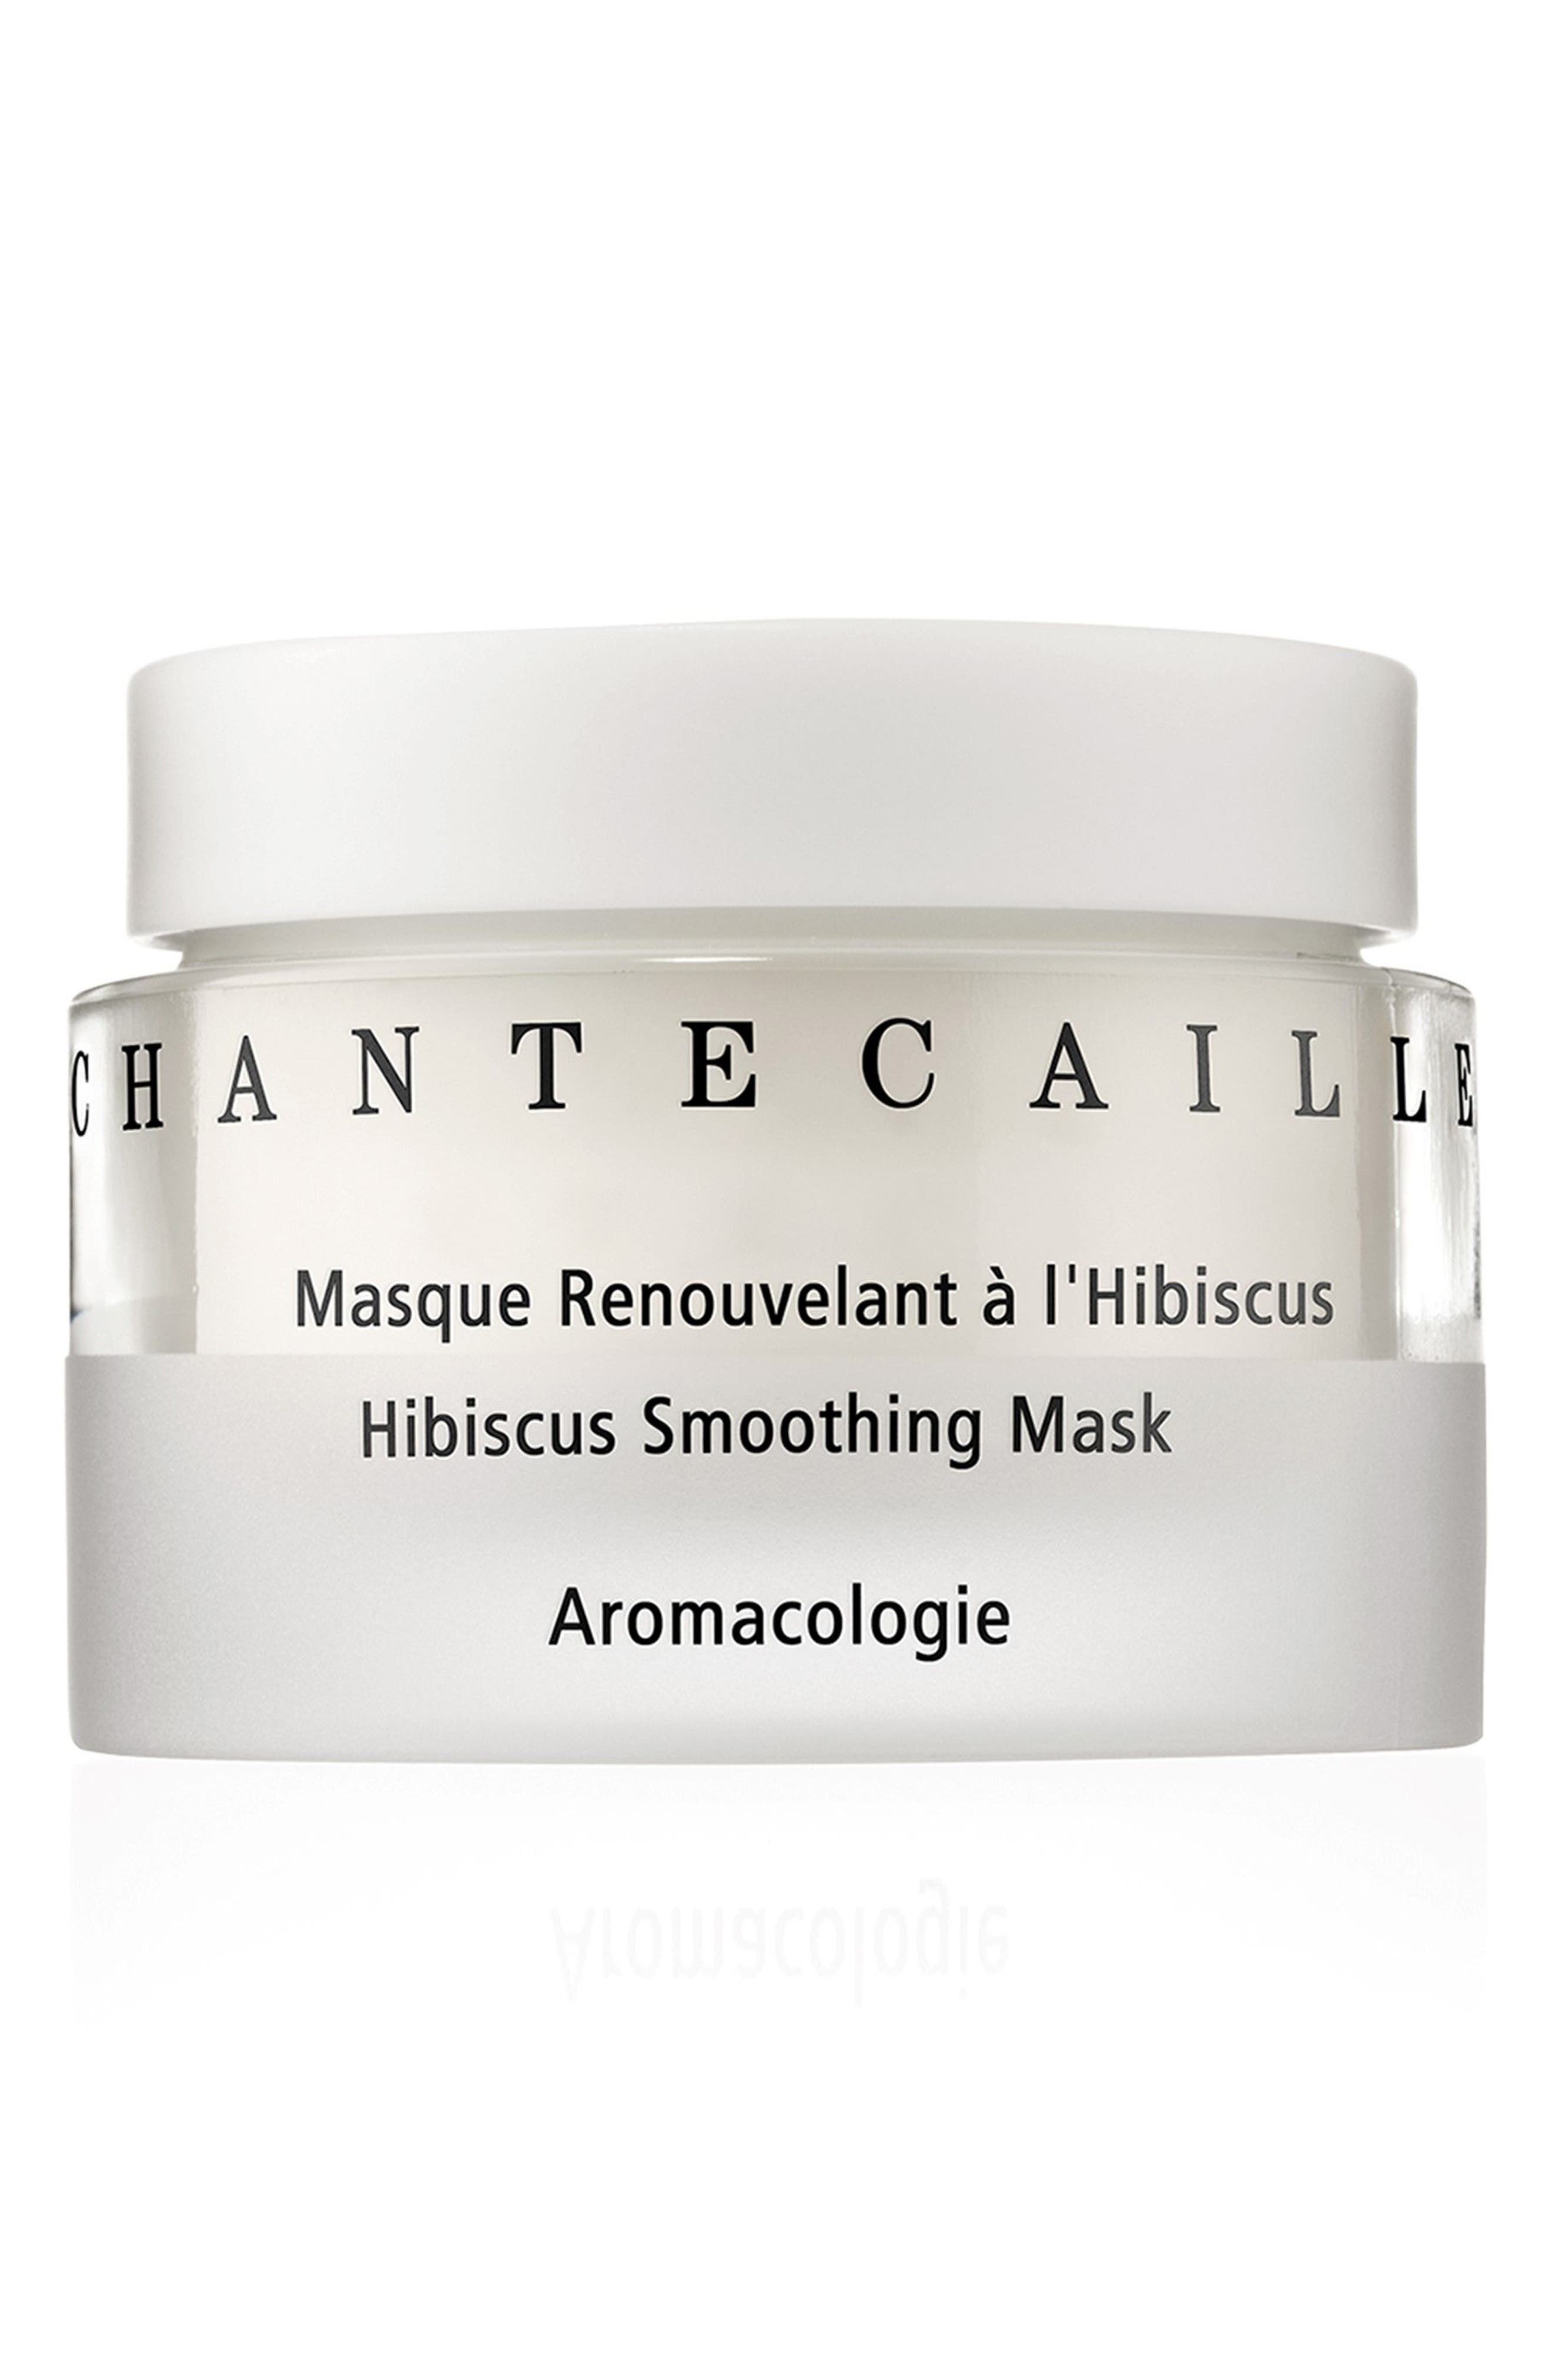 Hibiscus Smoothing Mask,                             Main thumbnail 1, color,                             NO COLOR